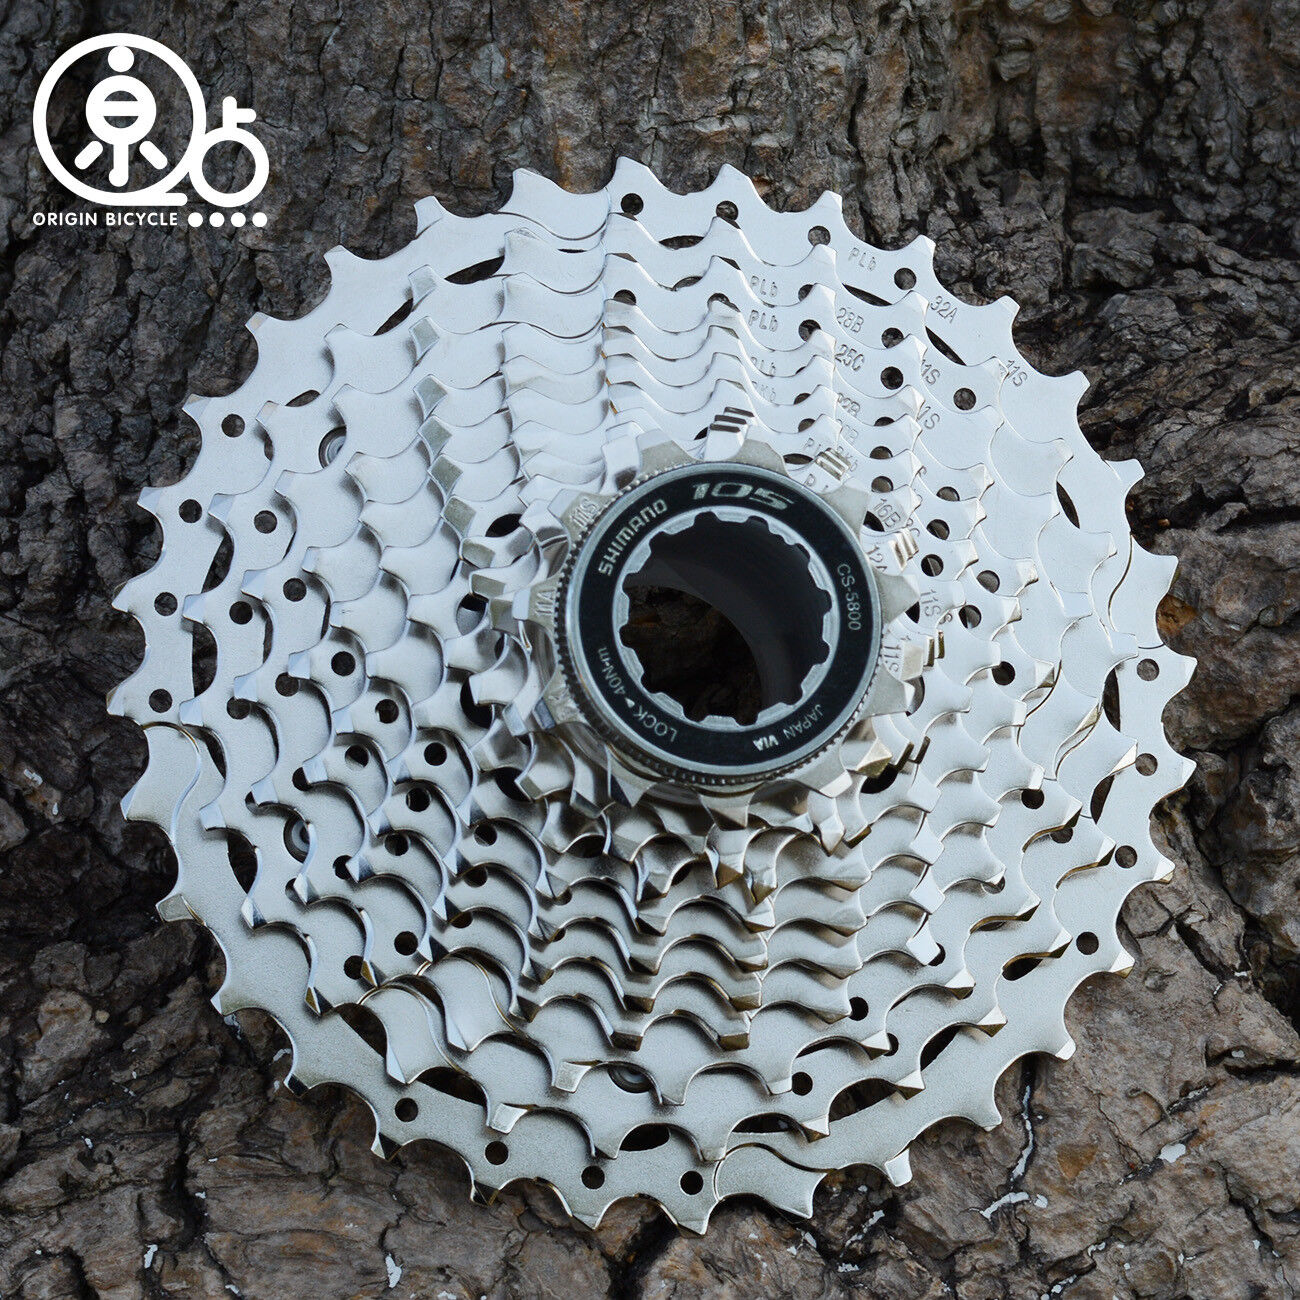 Shimano 105 CS-5800 Road Bike 11 Speed Cassette Freewheels Cogs 11-25T 28T 32T